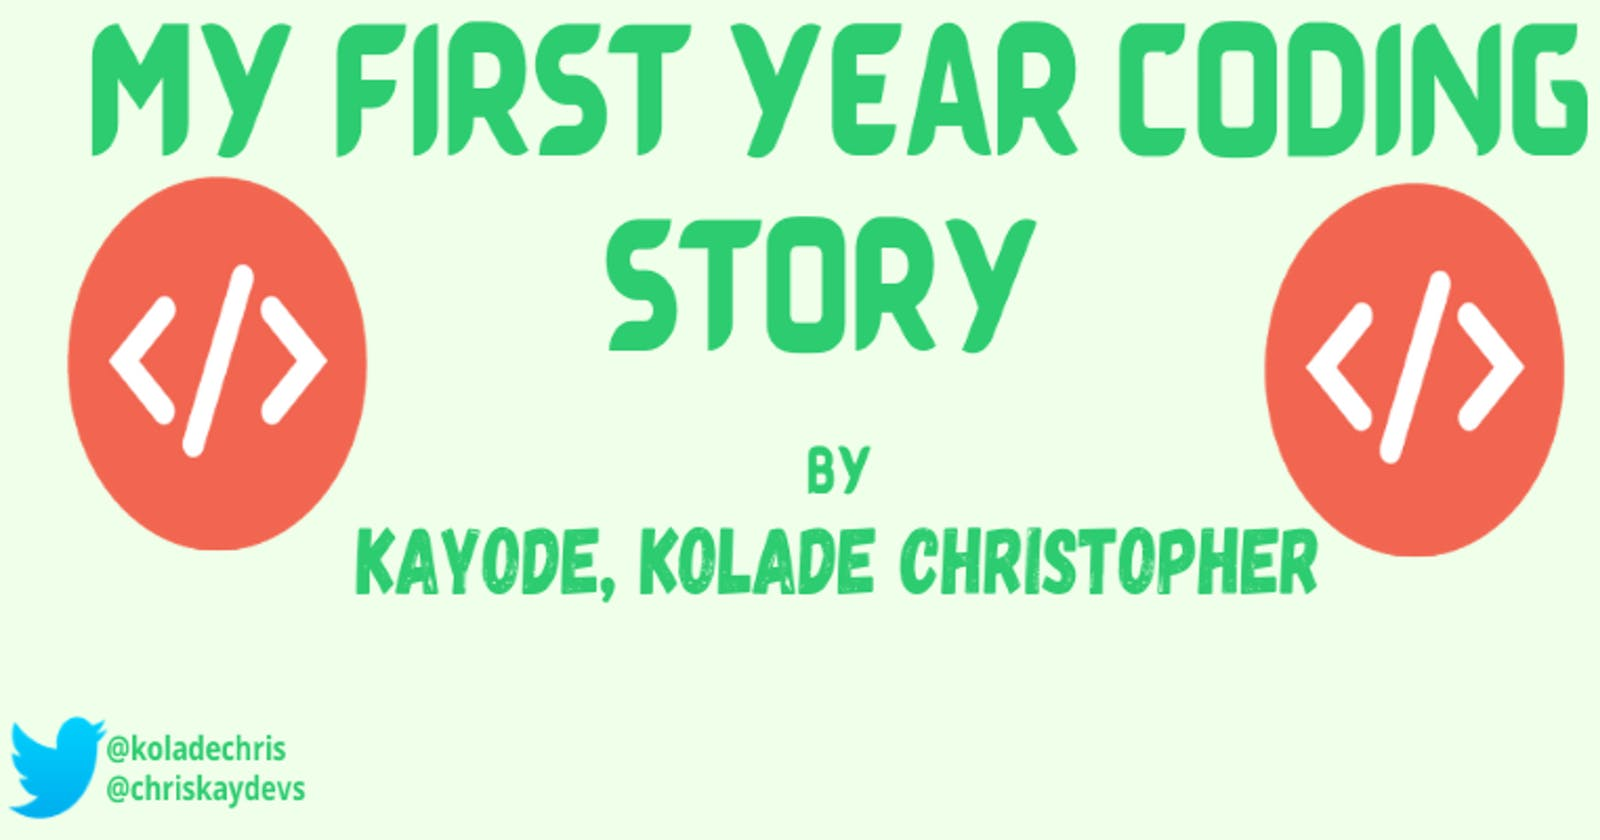 My First Year Coding Story